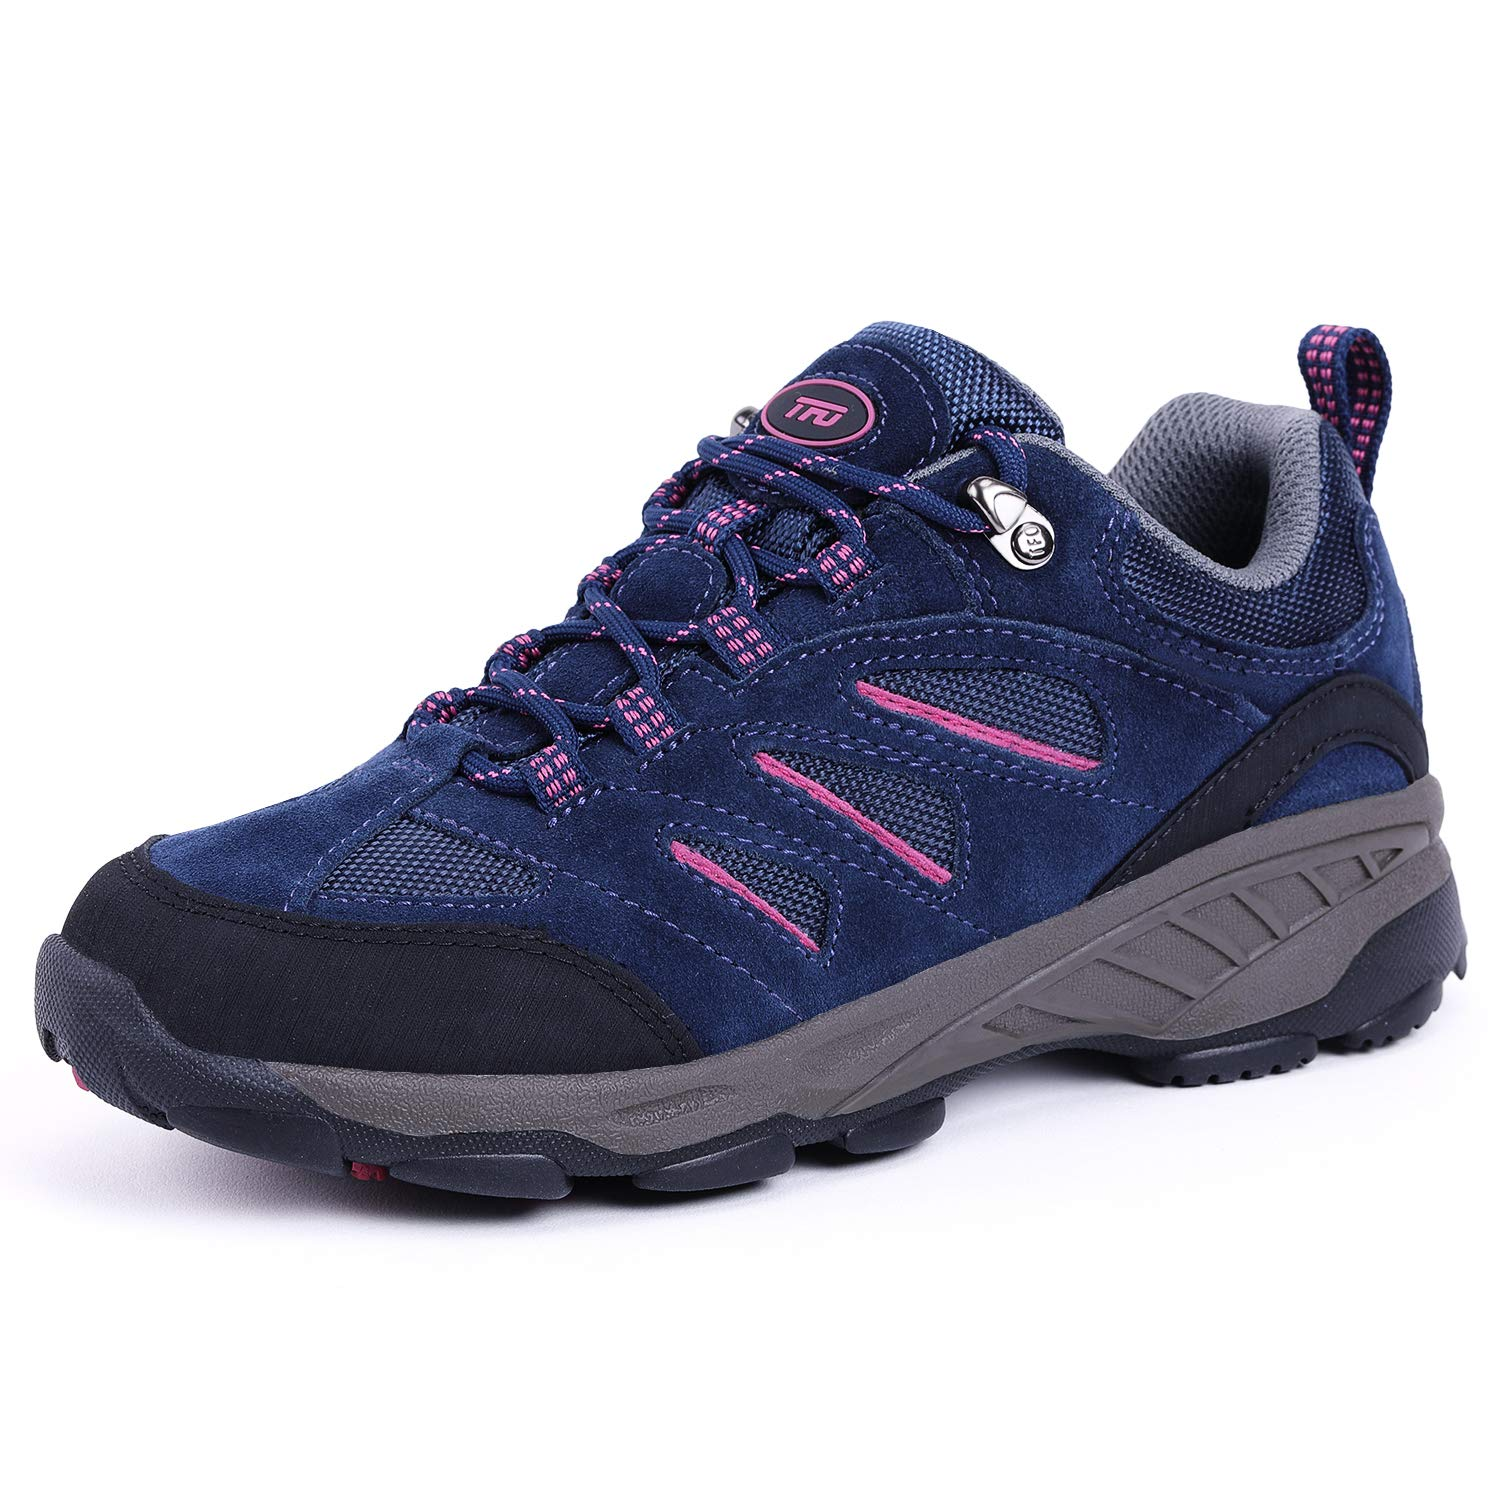 TFO Women's Air Cushion Hiking Shoe Breathable Running Outdoor Sports Trail Trekking Sneaker (9.5 M US, Purple Blue) by TFO